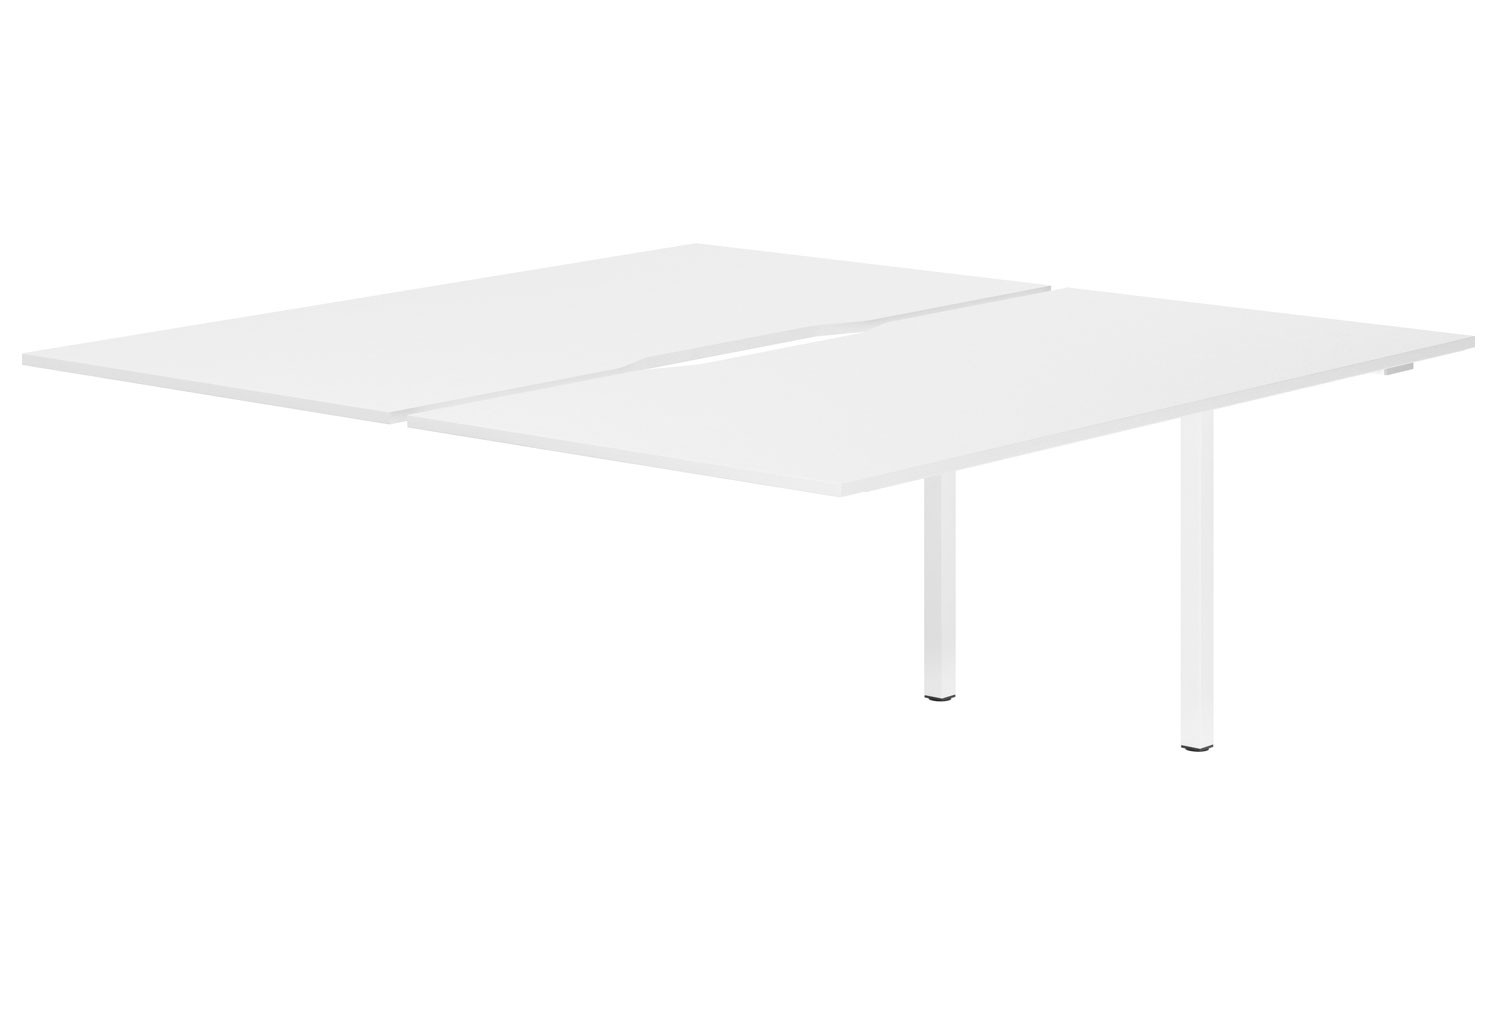 Campos Back To Back Add On Bench Desk (White)